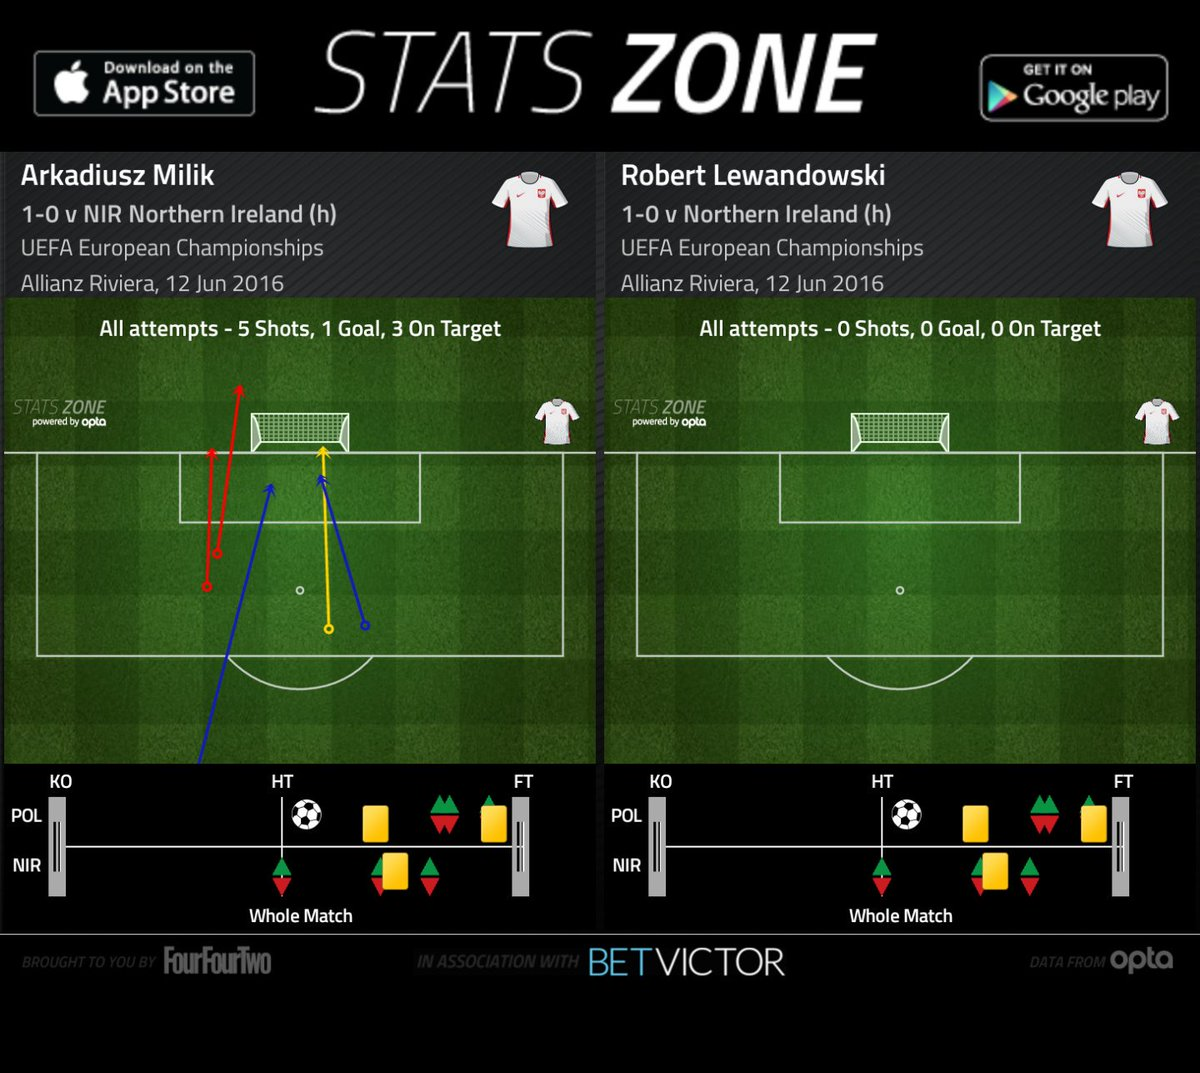 Stats Zone ⚽️ on Twitter: